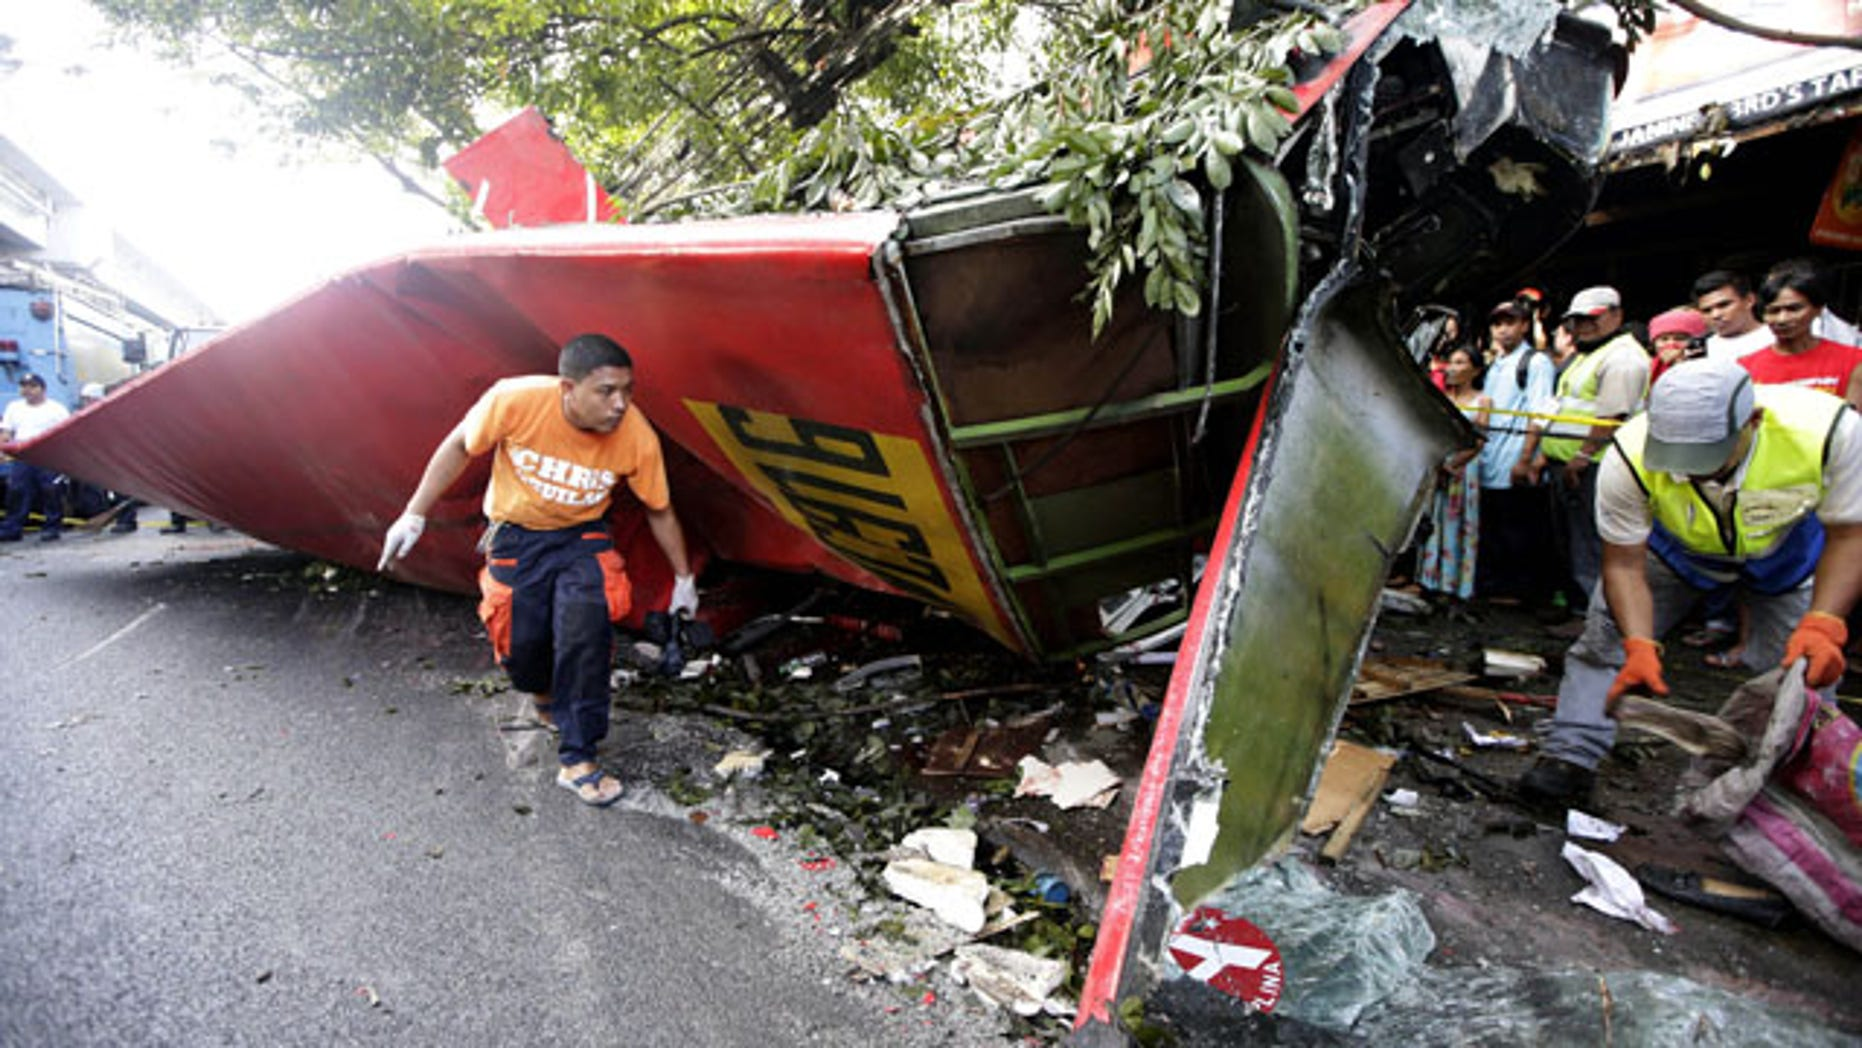 December 16, 2013: Investigators collect items from the wreckage of a passenger bus which plunged from an elevated highway known as the Skyway in suburban Paranaque southeast of Manila, Philippines.